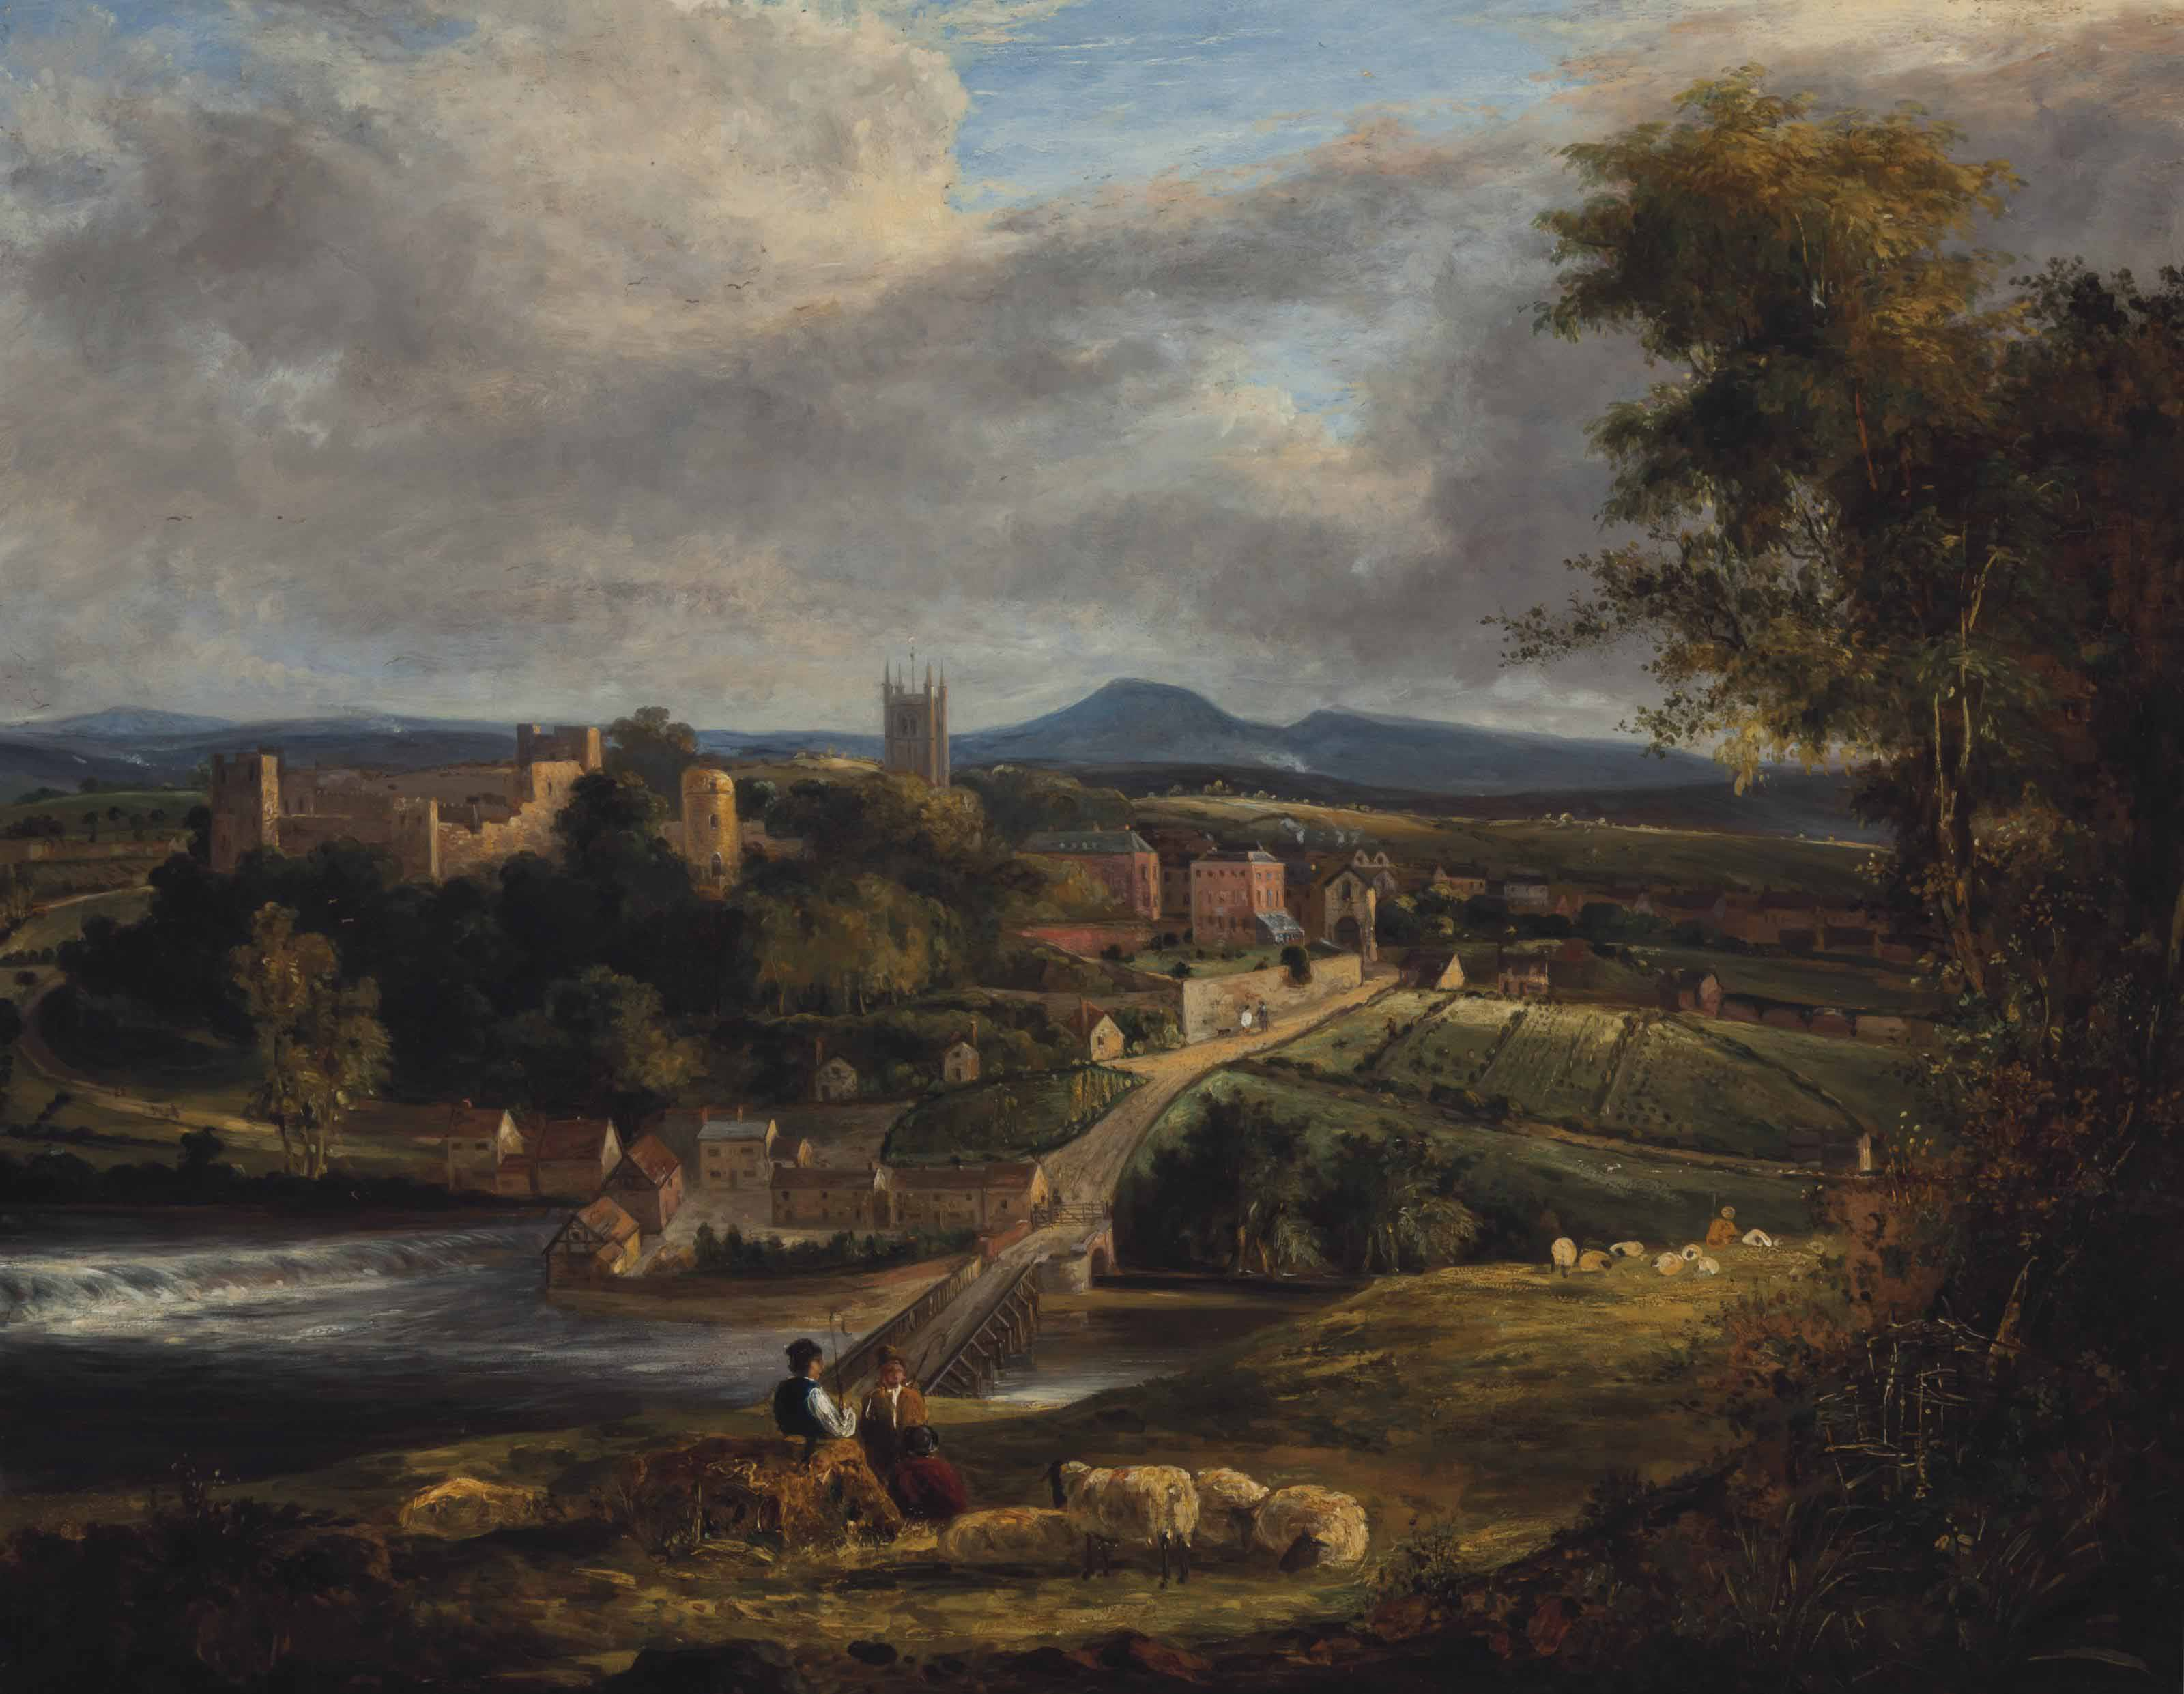 Shepherds resting on a hillside with a riverside town beyond